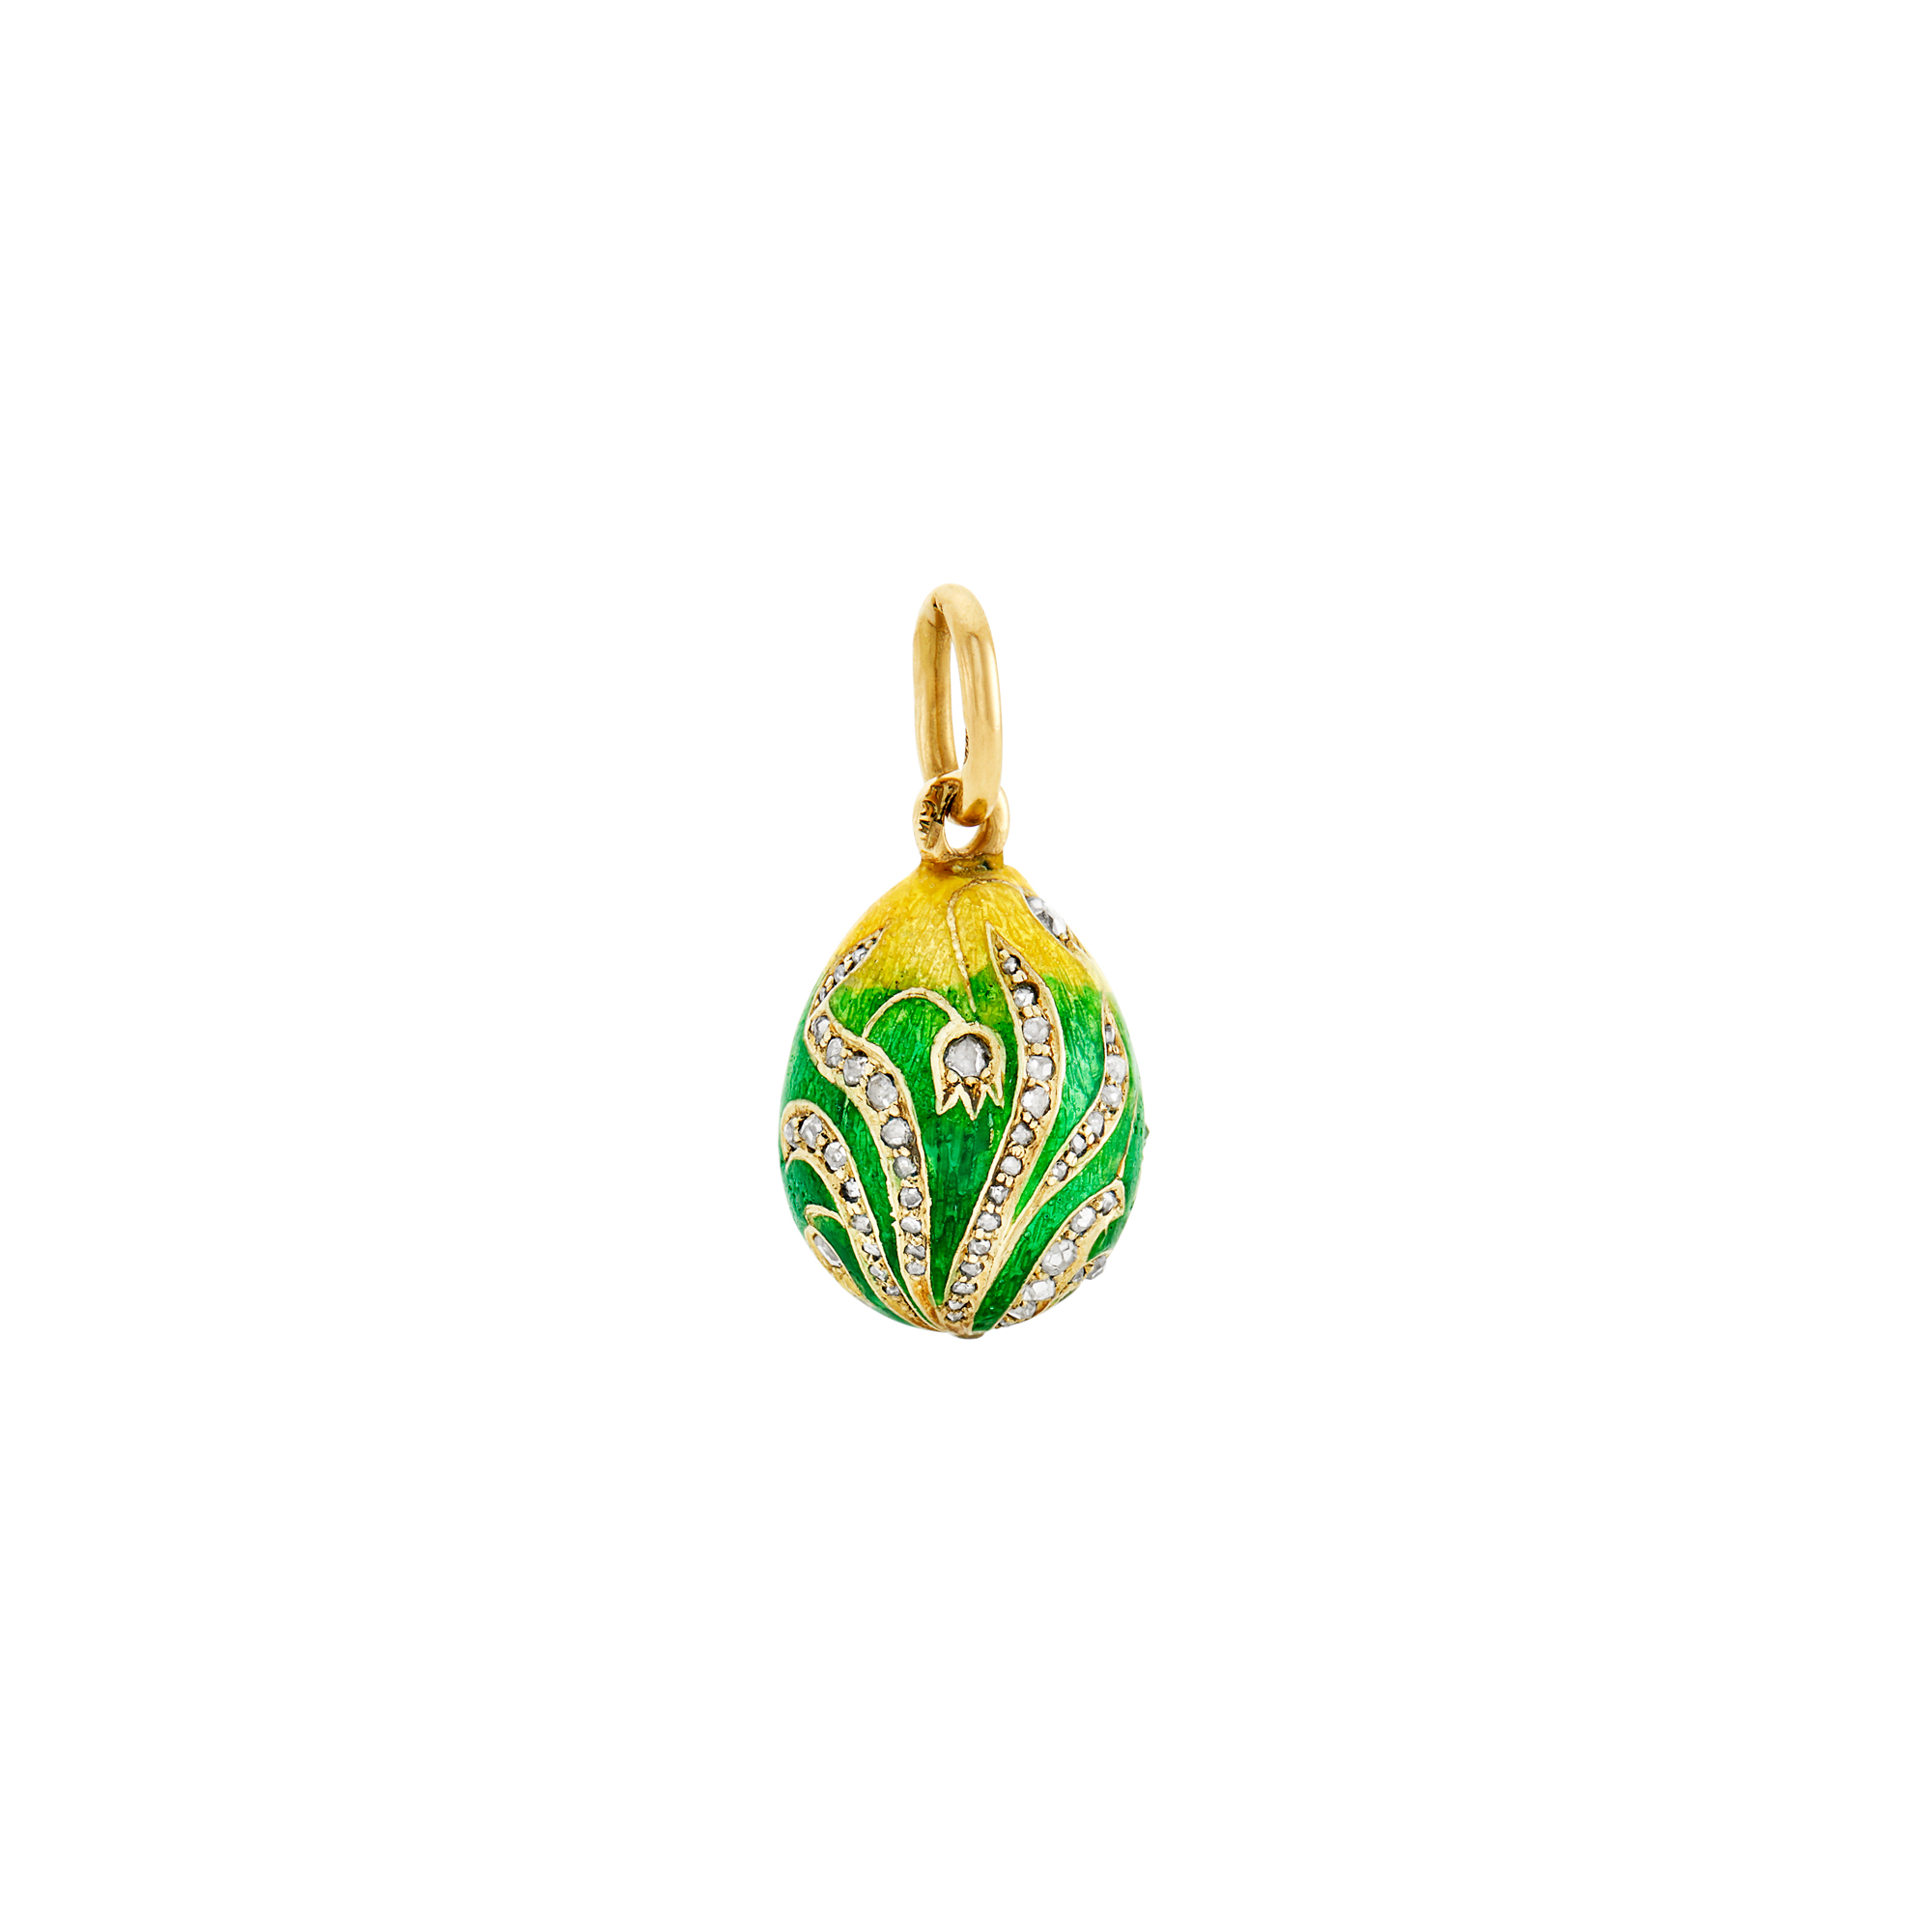 Lot image - Fabergé Jeweled Gold and Guilloché Enamel Pendant Egg